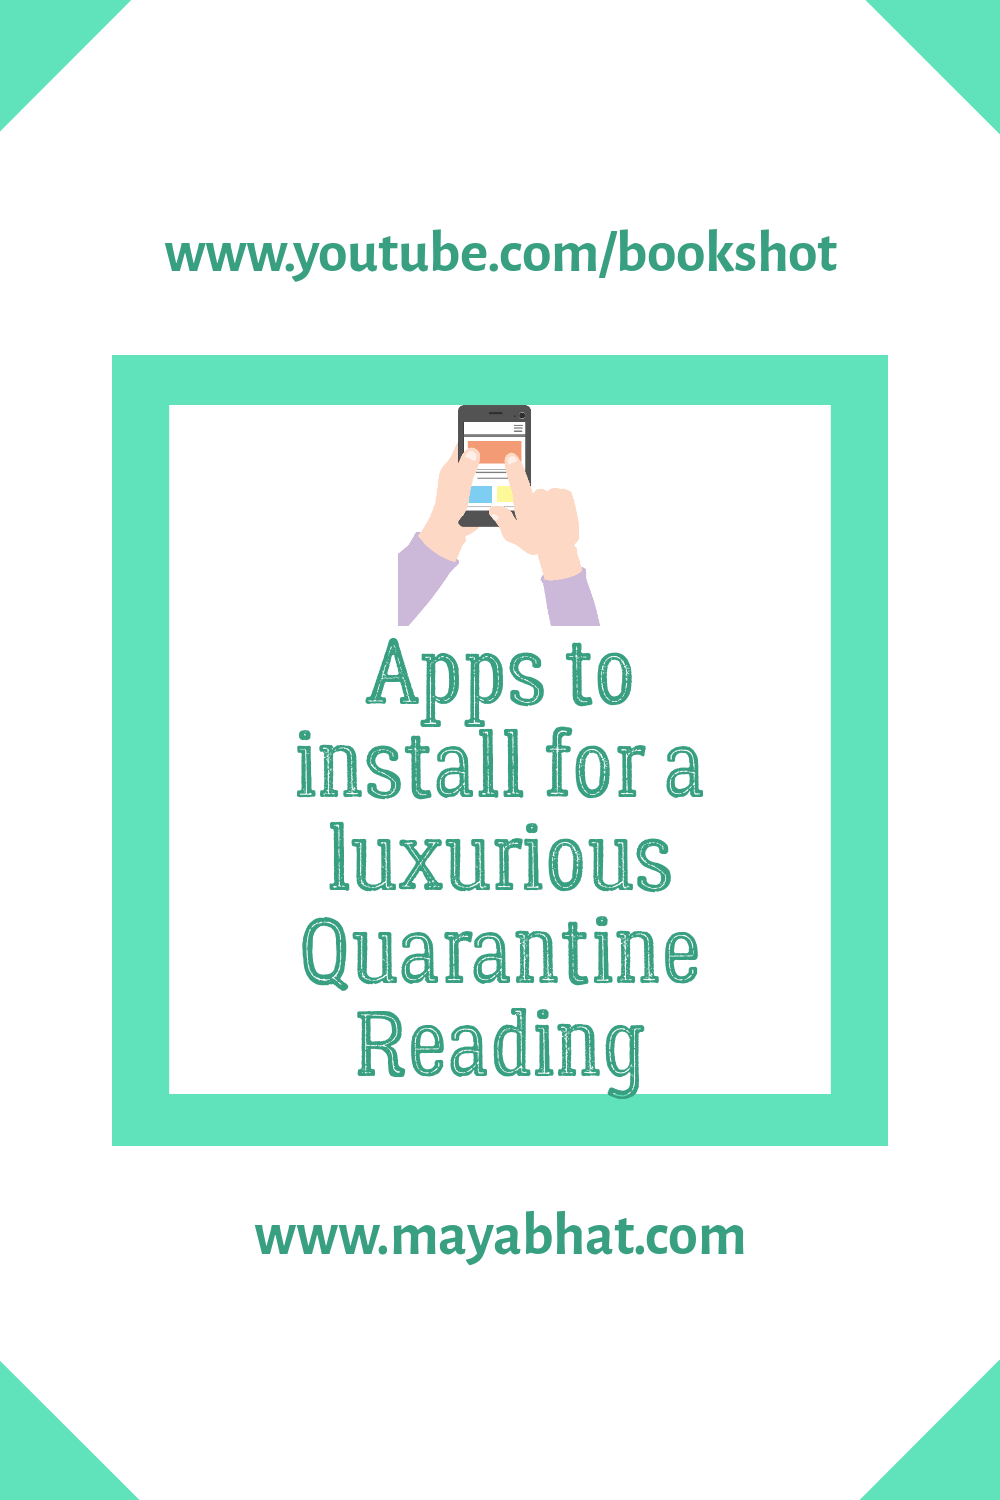 Apps for quarantine reading